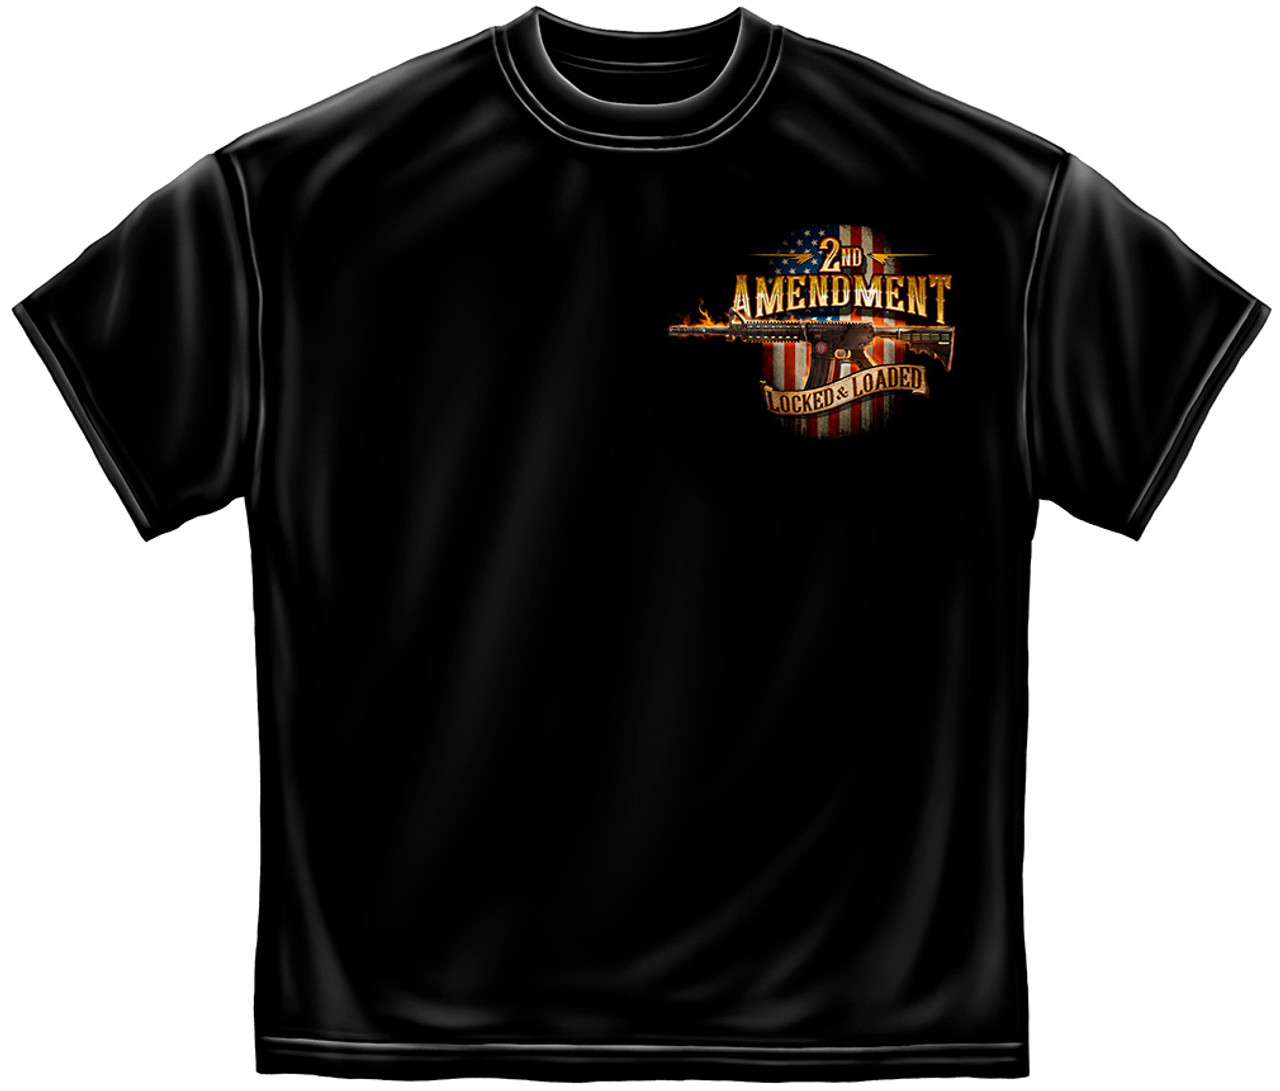 **(NEW-LICENSED,2ND-AMENDMENT-LOCKED & LOADED-SINCE-1791,NICE-GRAPHIC-PRINTED-PREMIUM-DOUBLE-SIDED-TEES:)**